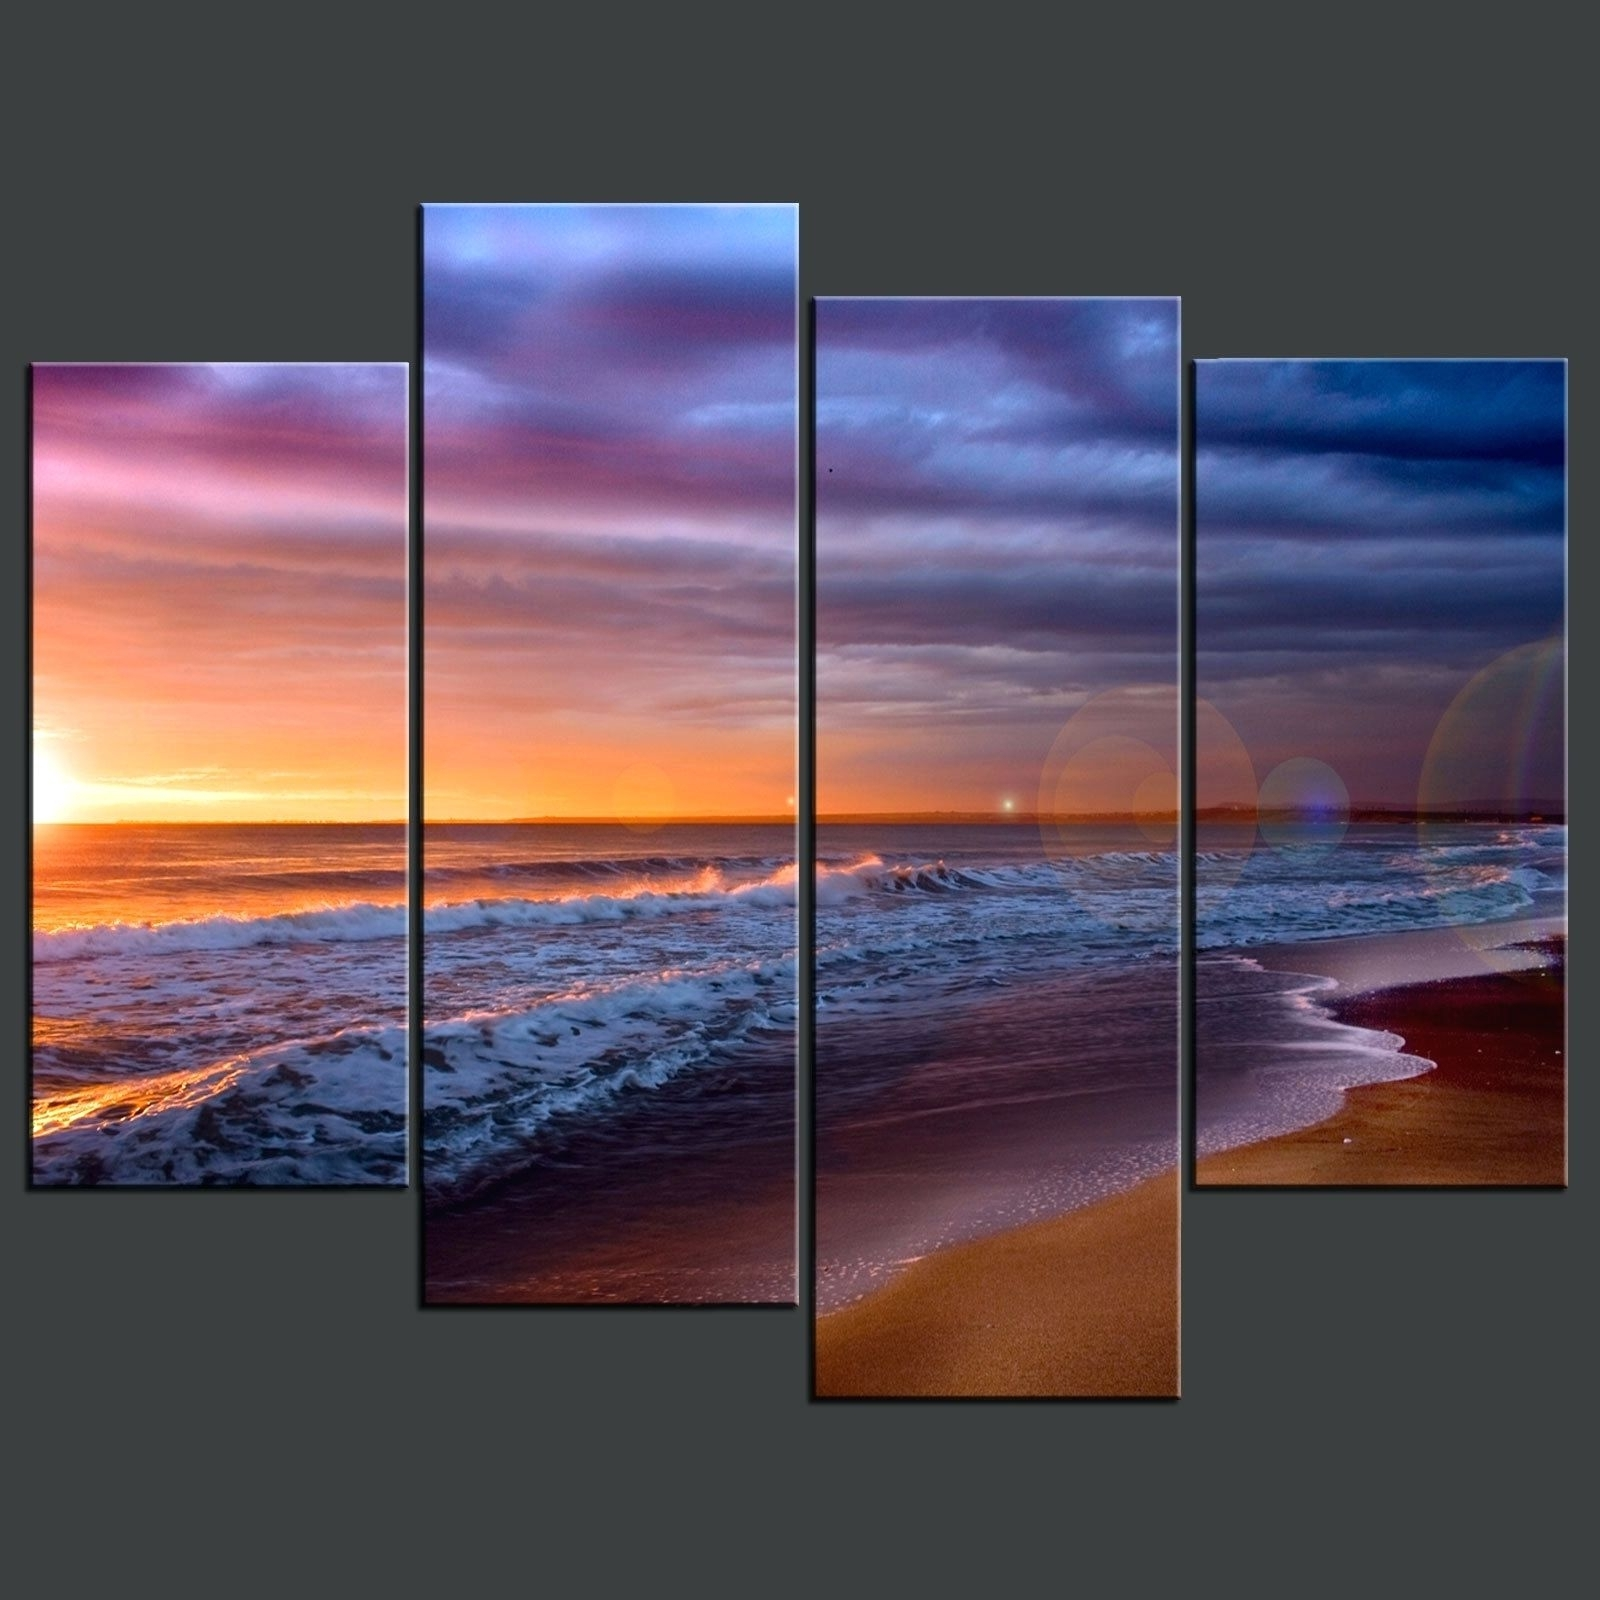 Canvas Wall Art Beach Scenes For Most Recent Wall Arts ~ Beach Scene Wall Art Canvas Beach Themed Canvas Wall (Gallery 5 of 15)